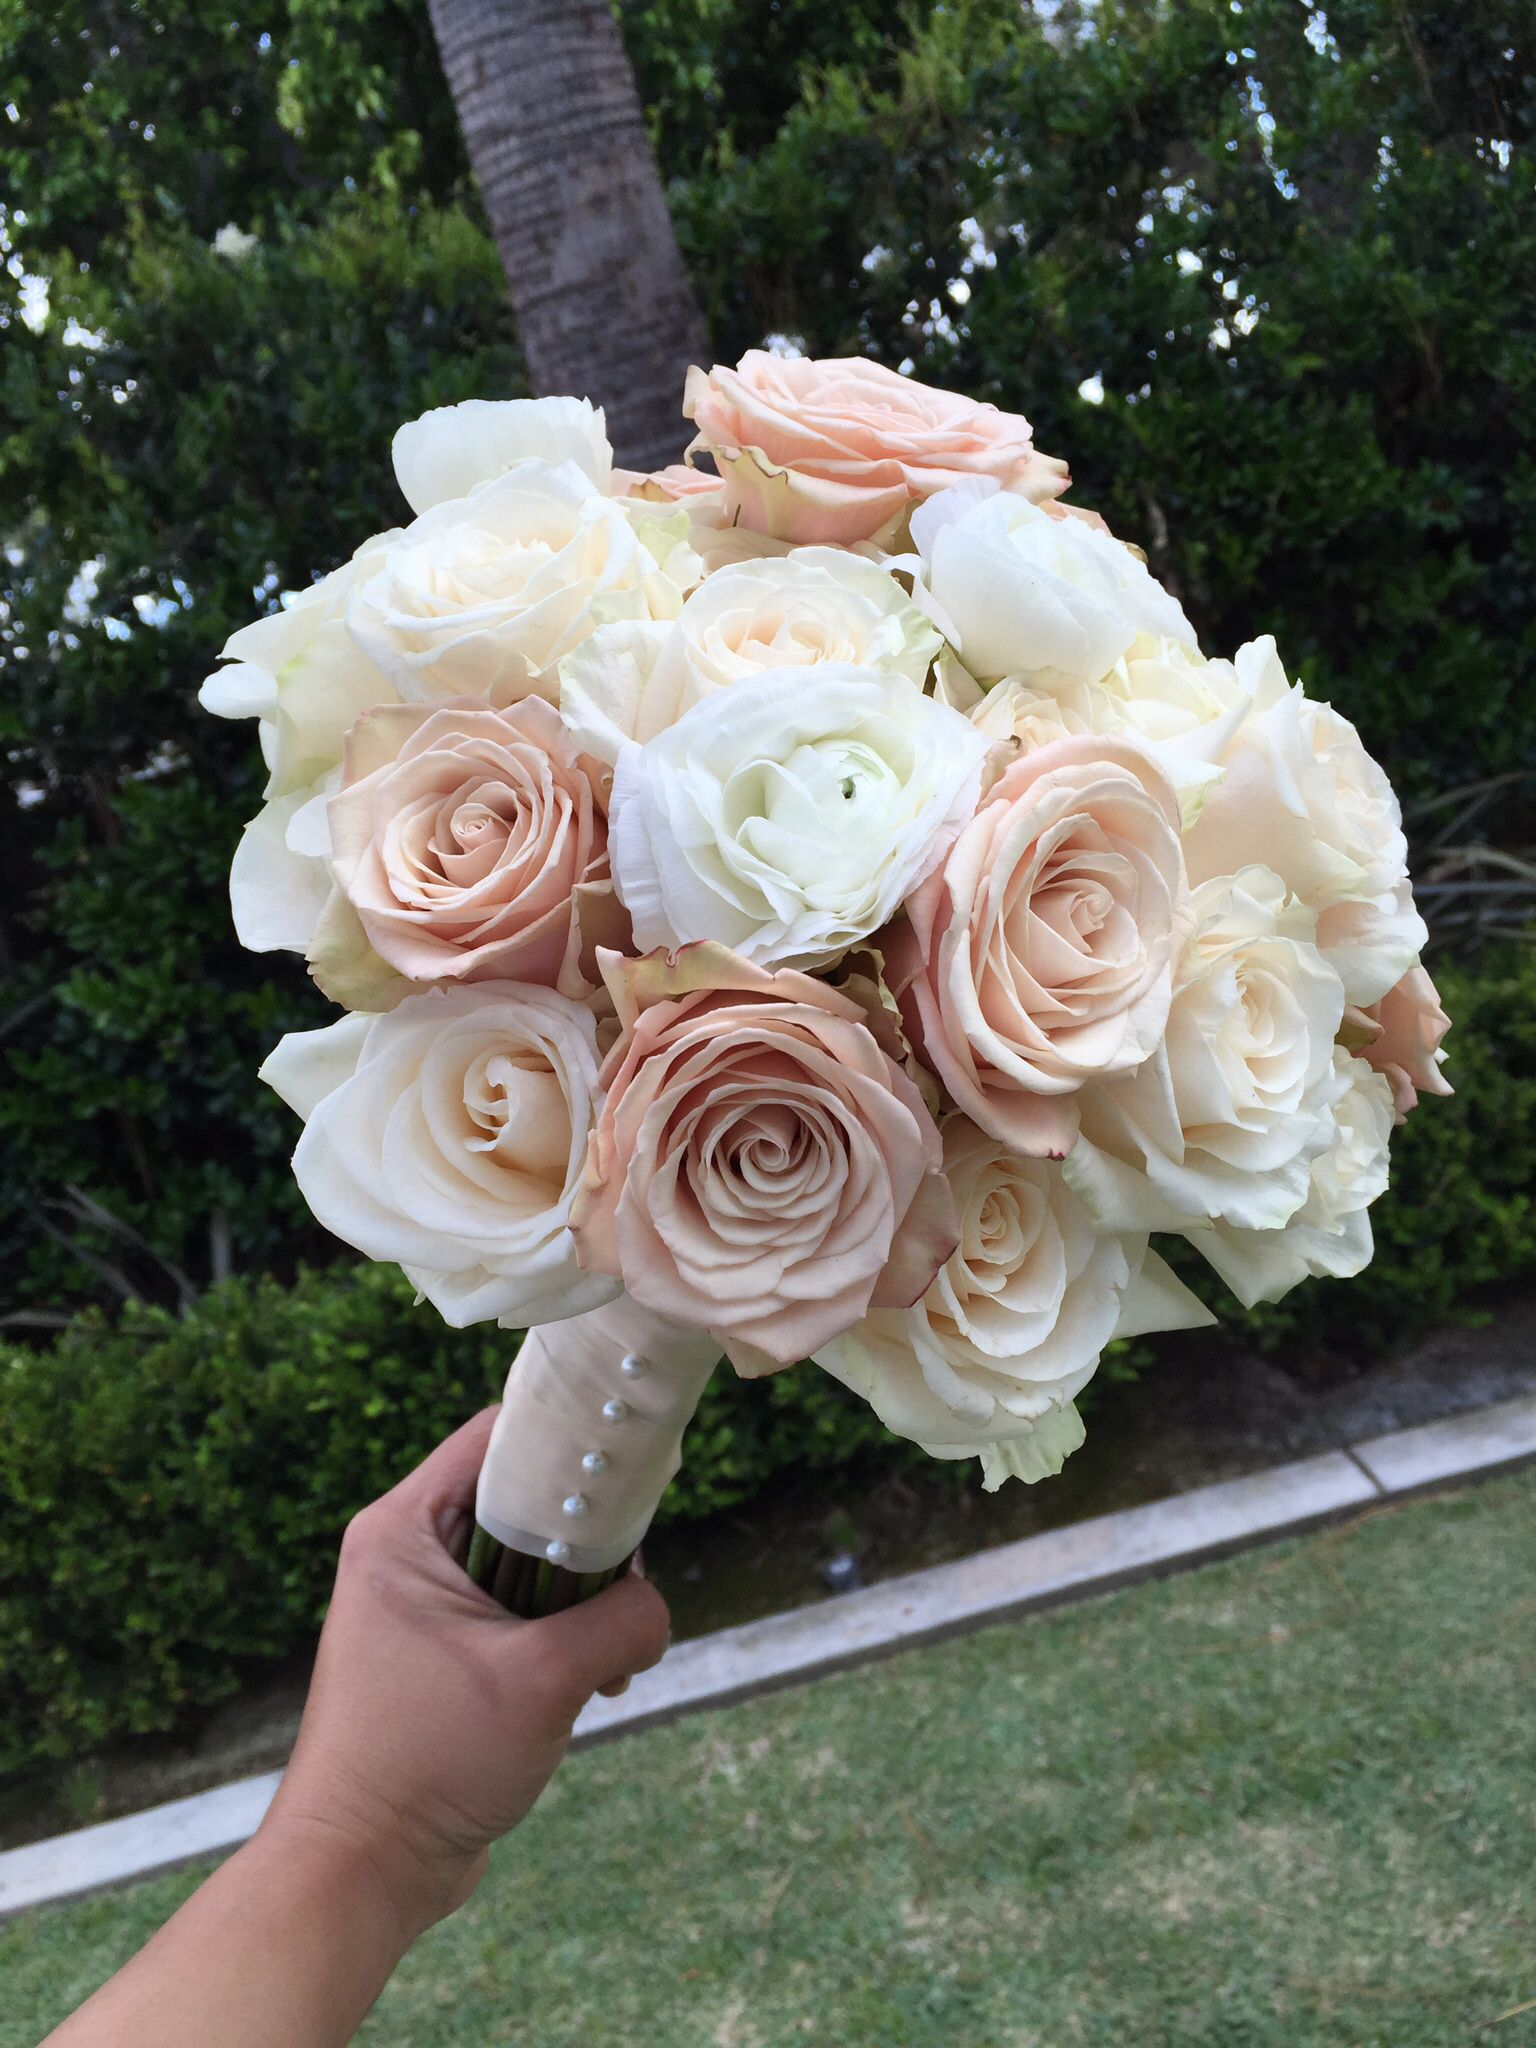 White Garden Rose Bouquet bride and attendants' bouquets with ivory hydrangea and champagne